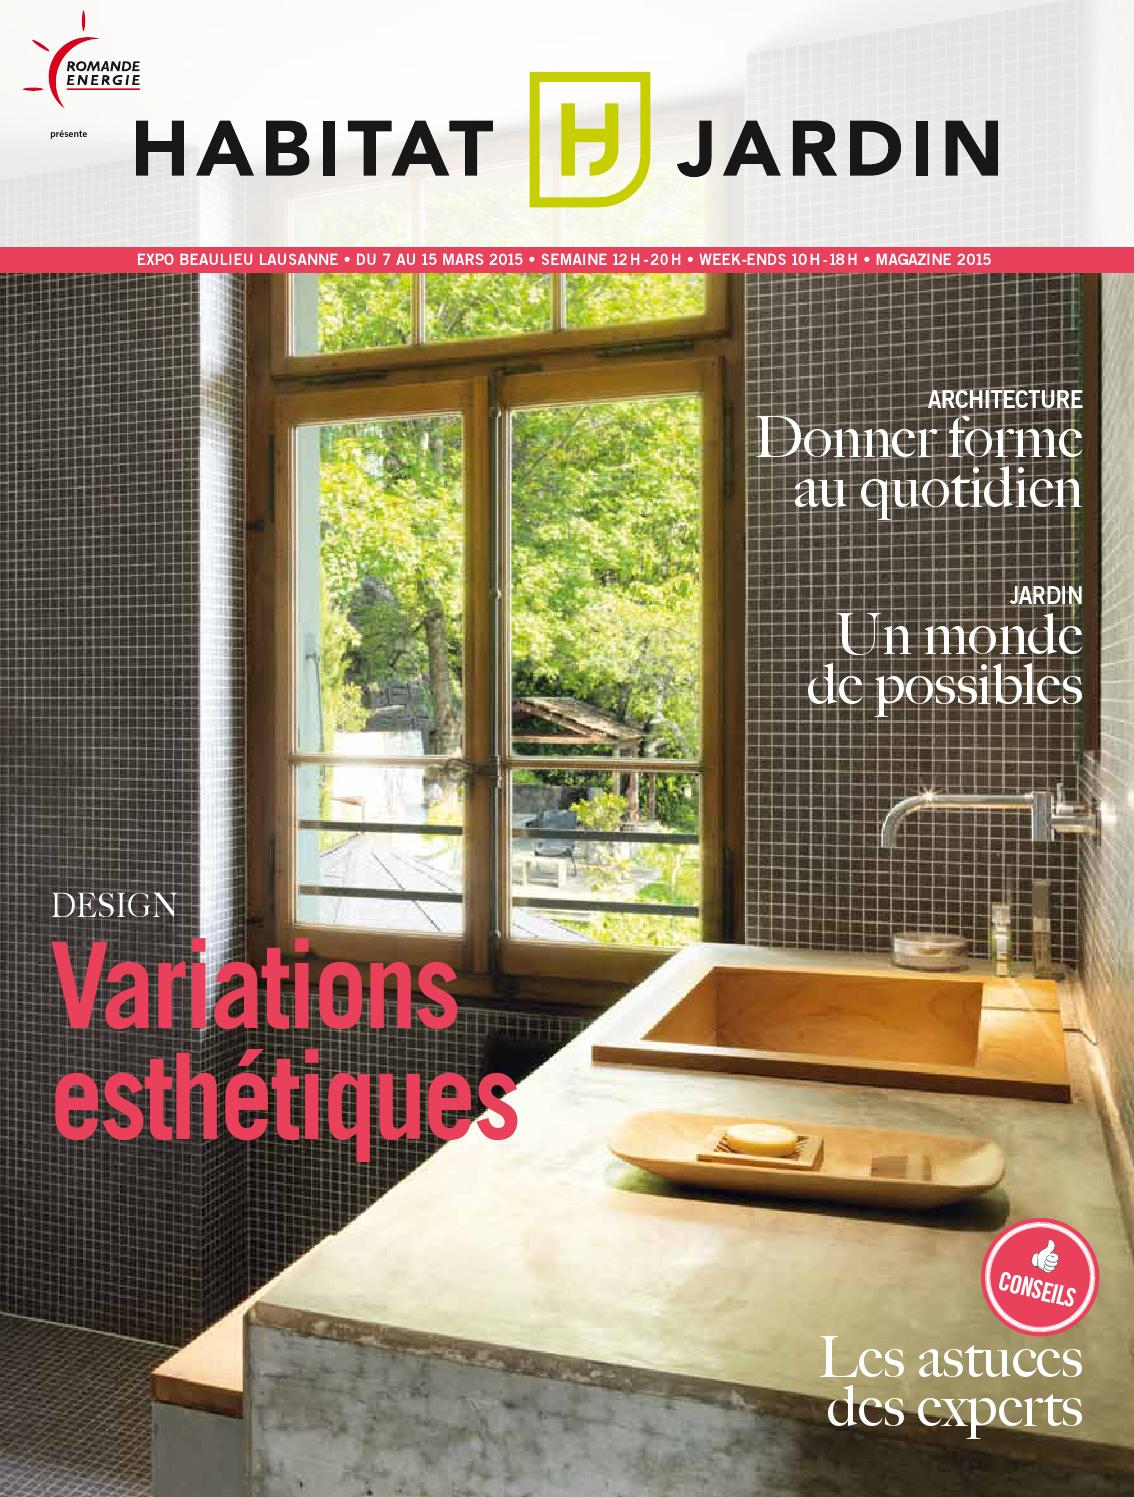 Salon De Jardin Encastrable 10 Places Frais Habitat Jardin 2015 Magazine by Inédit Publications Sa issuu Of 27 Luxe Salon De Jardin Encastrable 10 Places